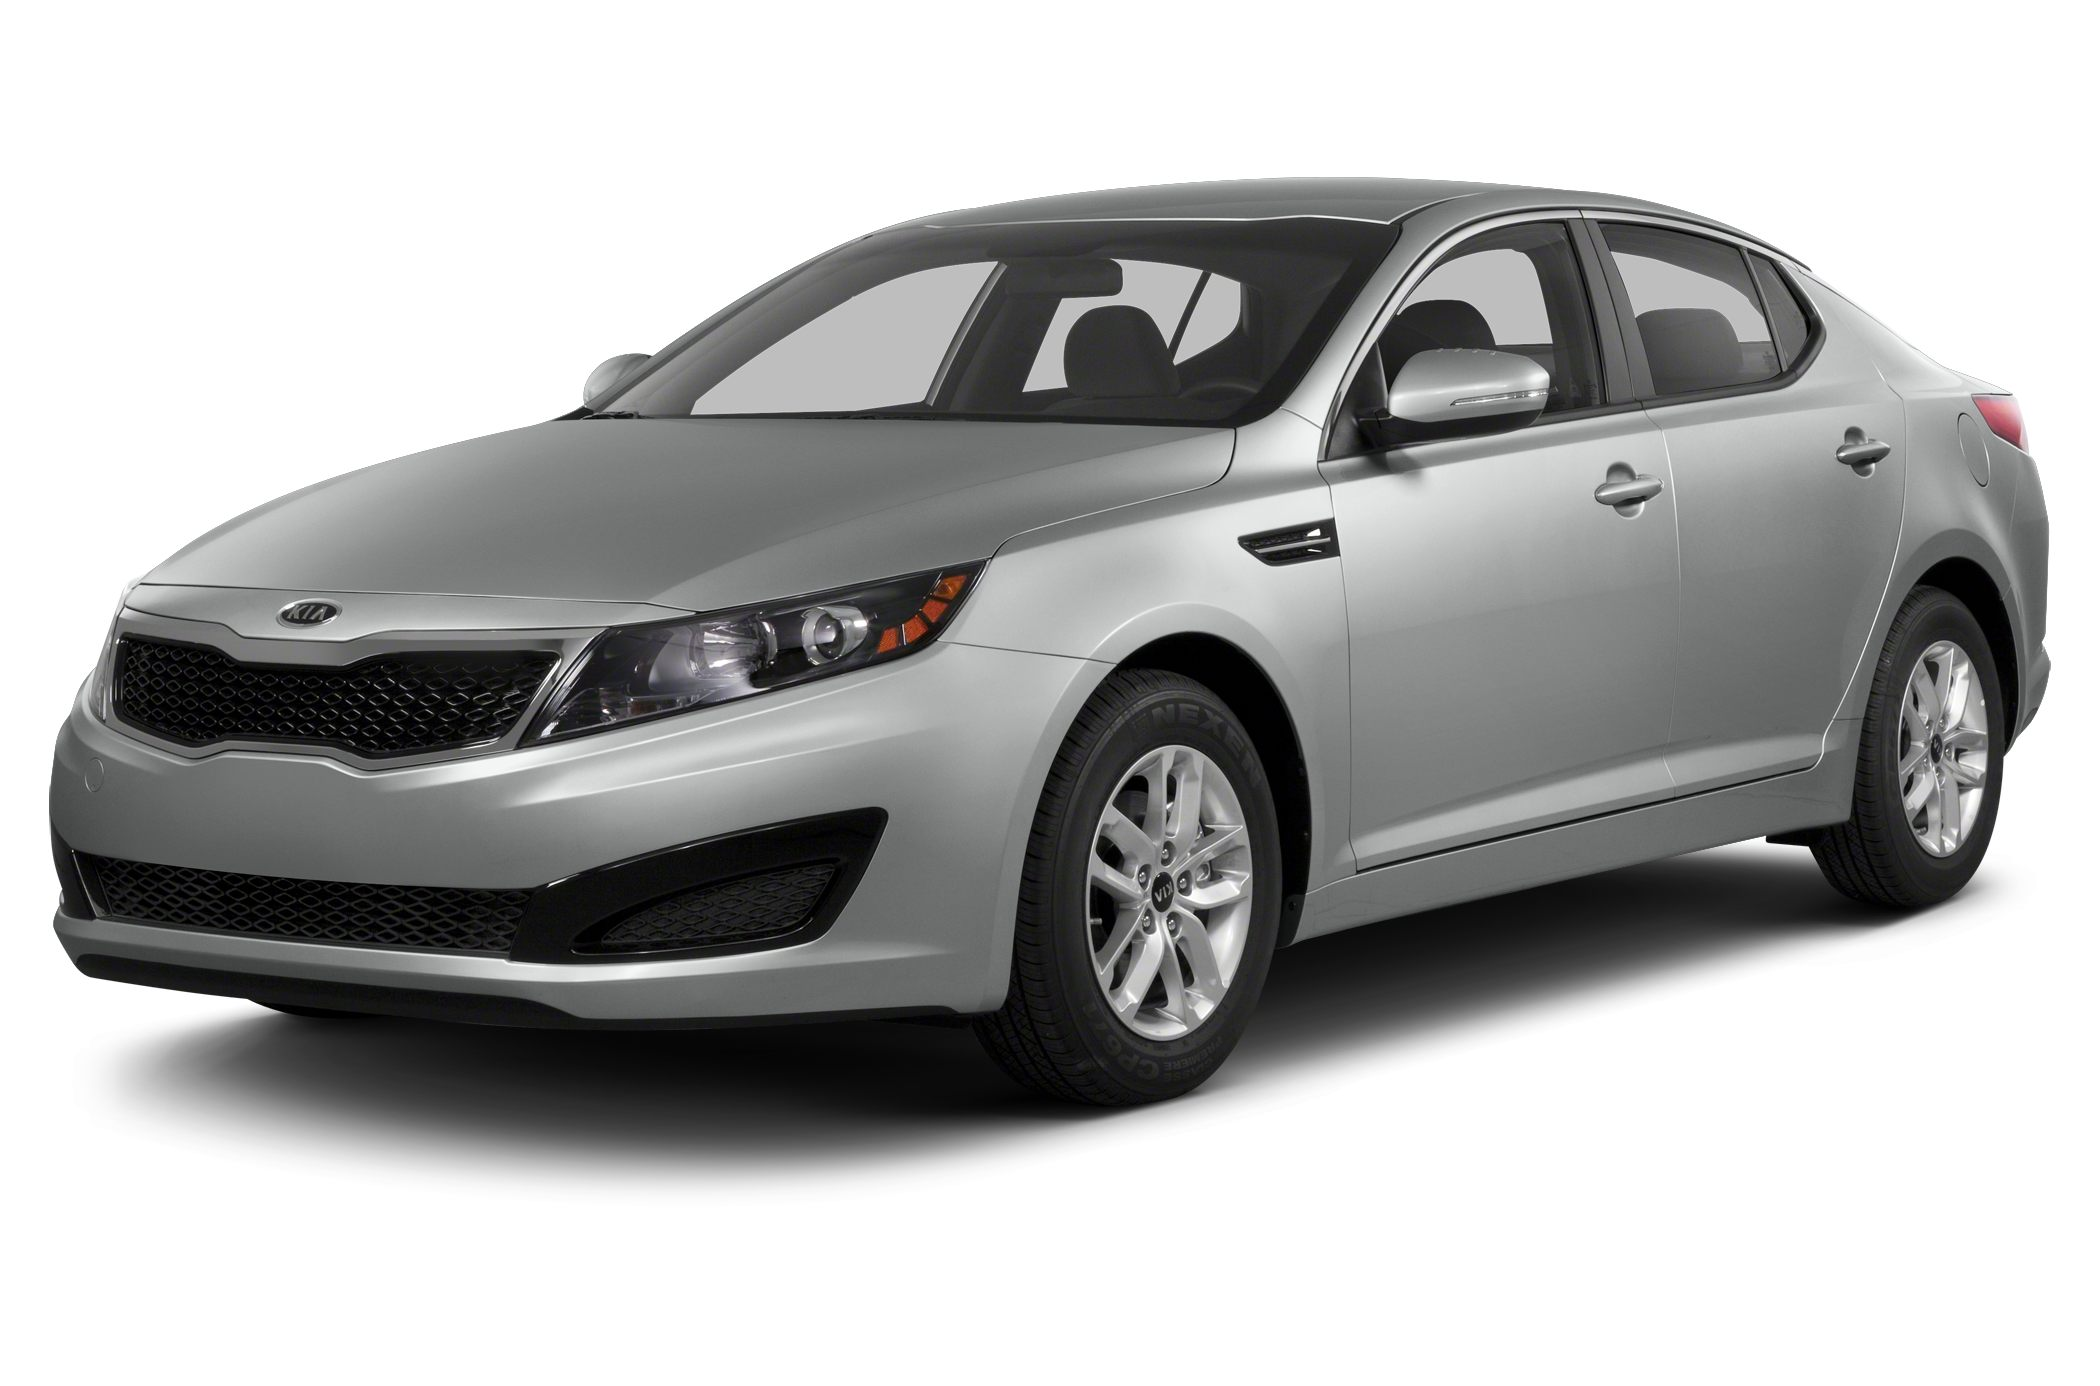 2013 Kia Optima LX Sedan for sale in Pendleton for $18,900 with 17,723 miles